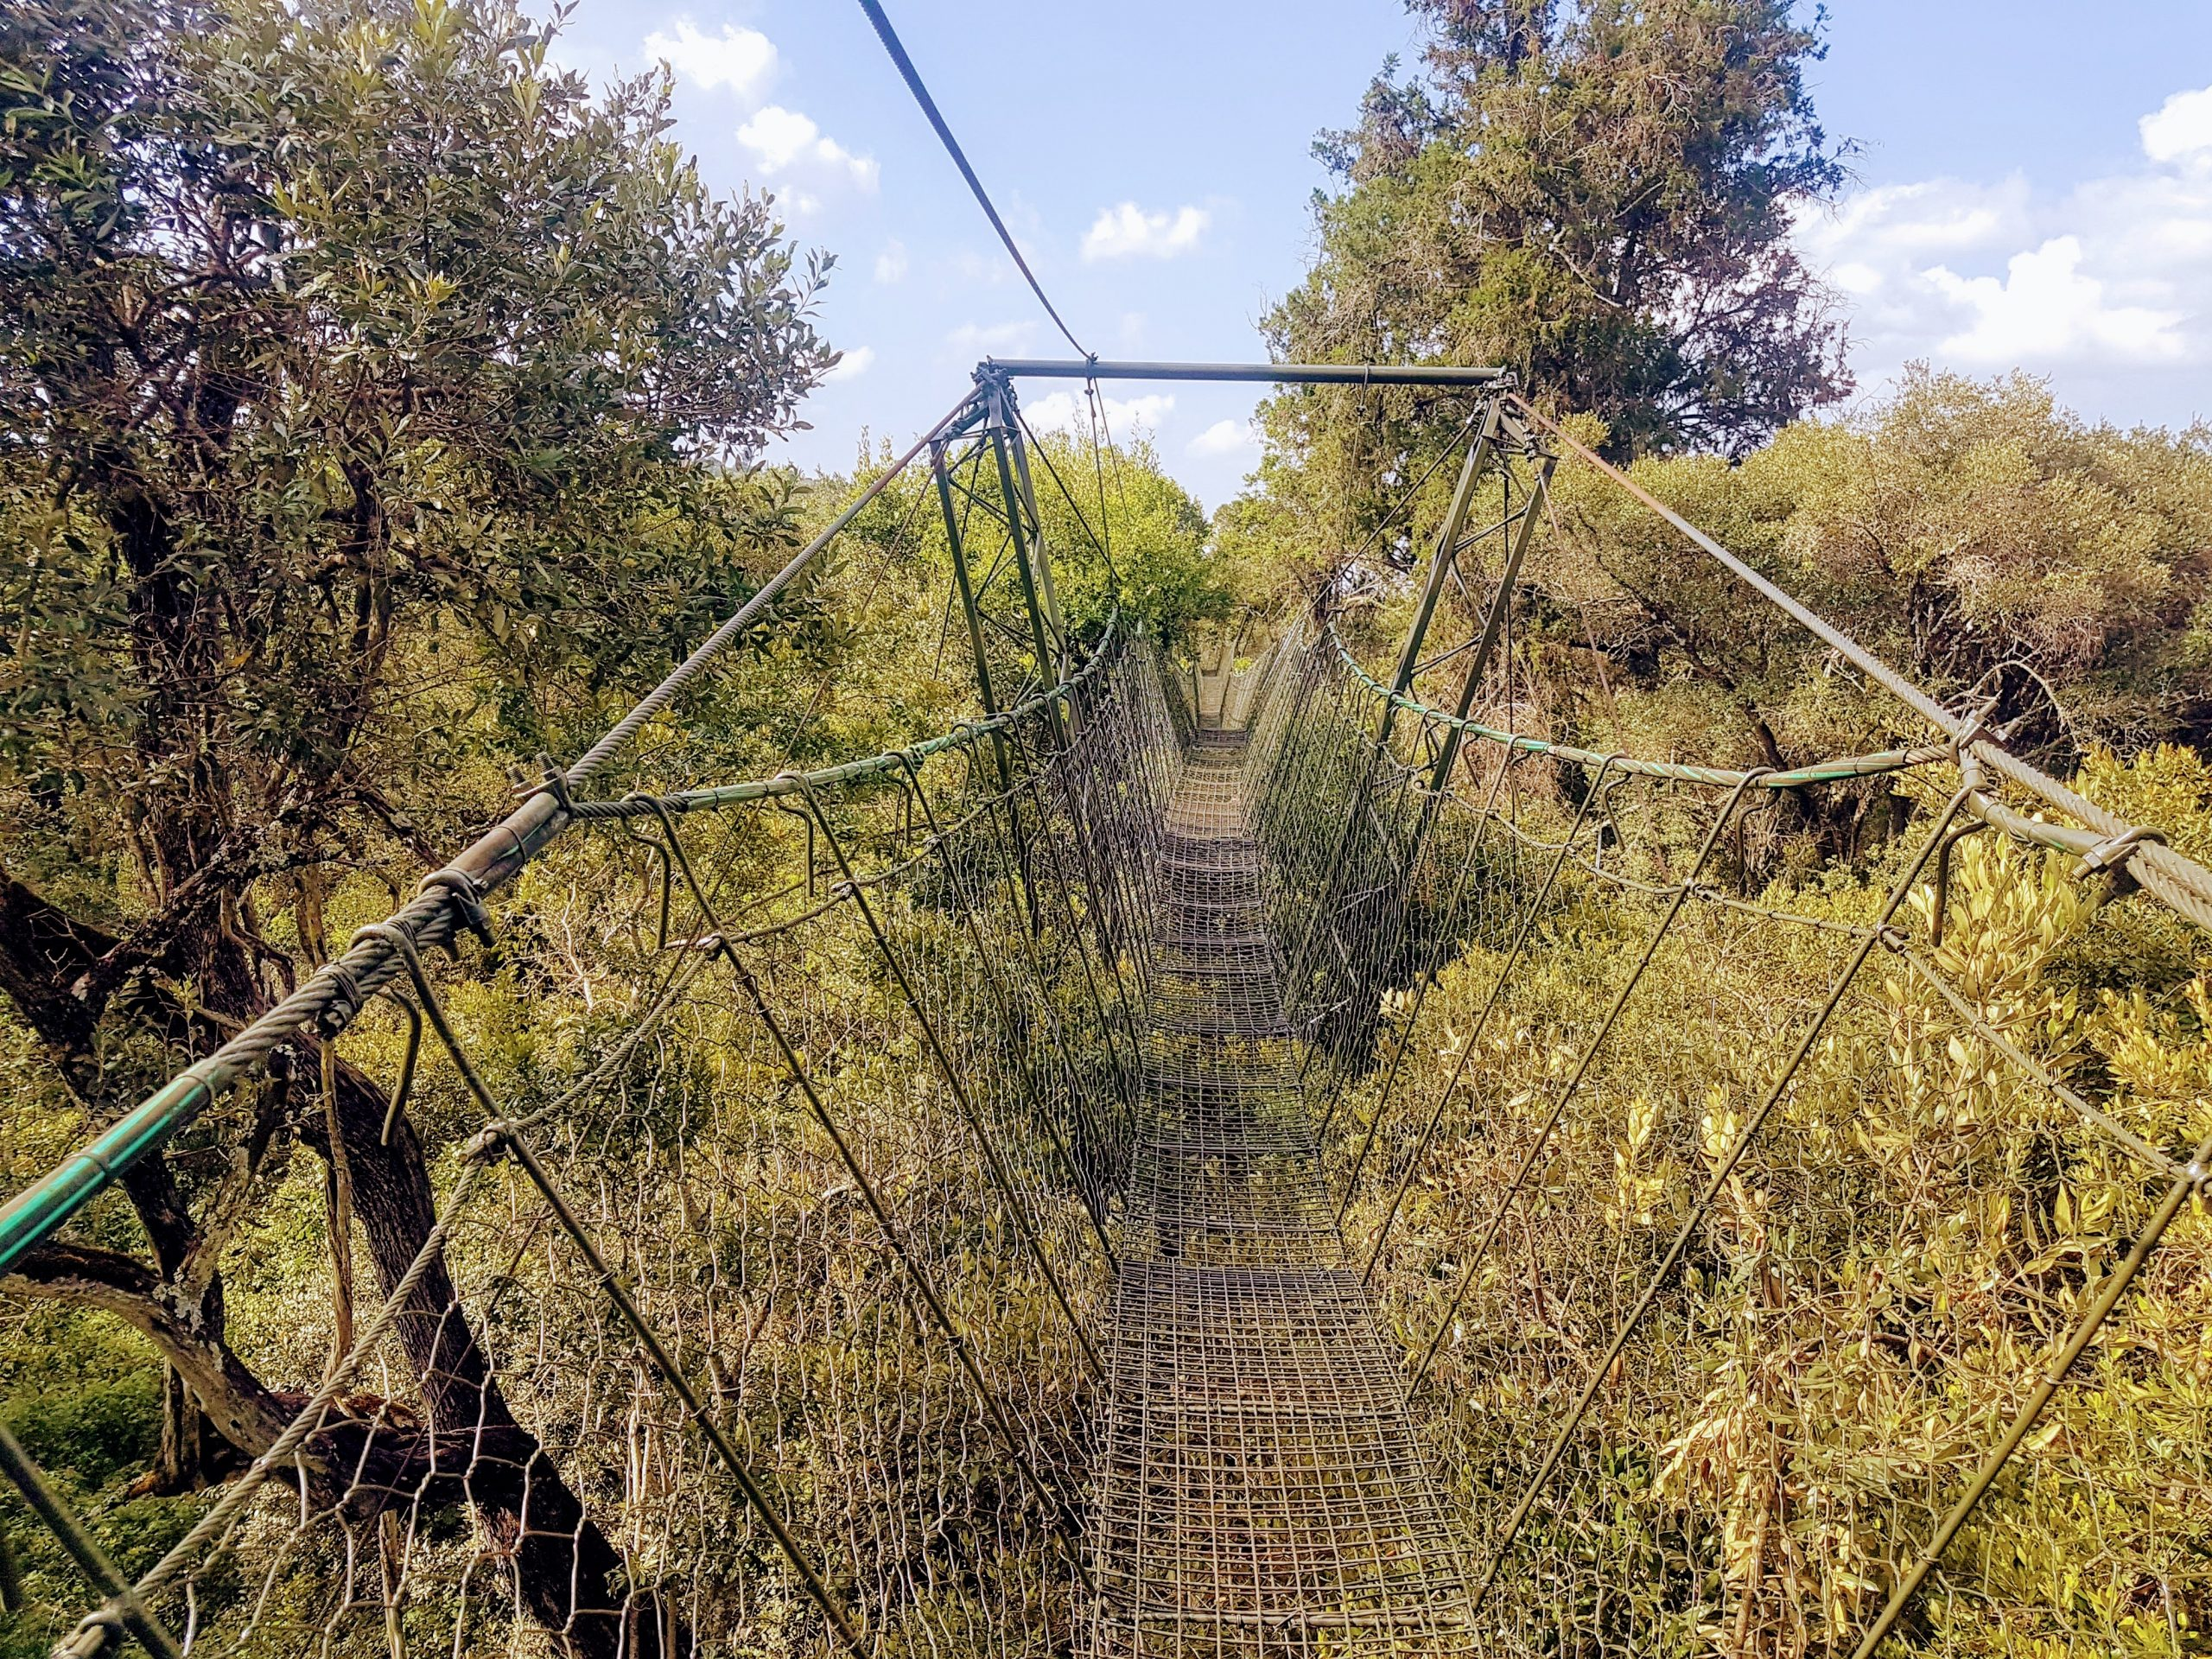 One Day trip to Nanyuki, Hiking Ngare Ndare Forest